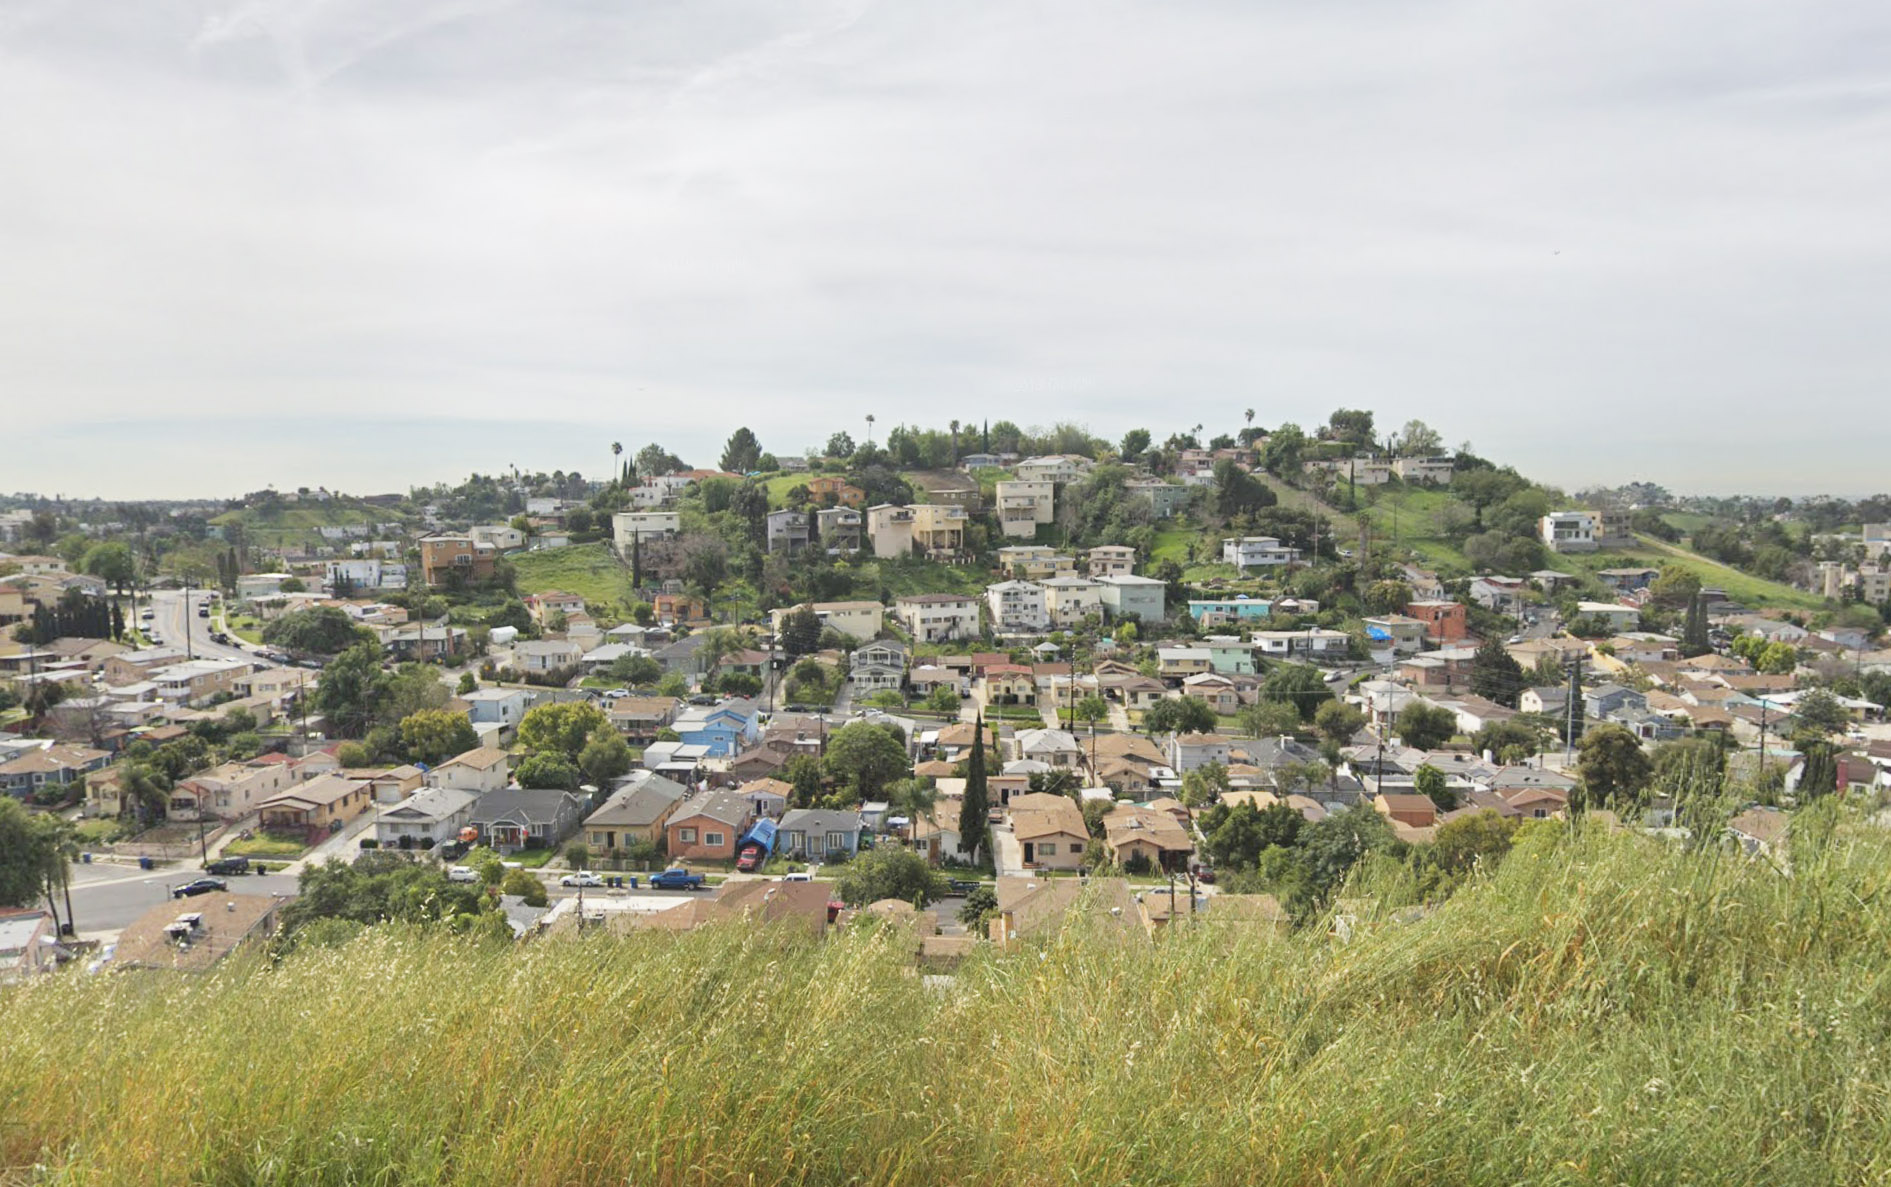 hills with several homes and streets